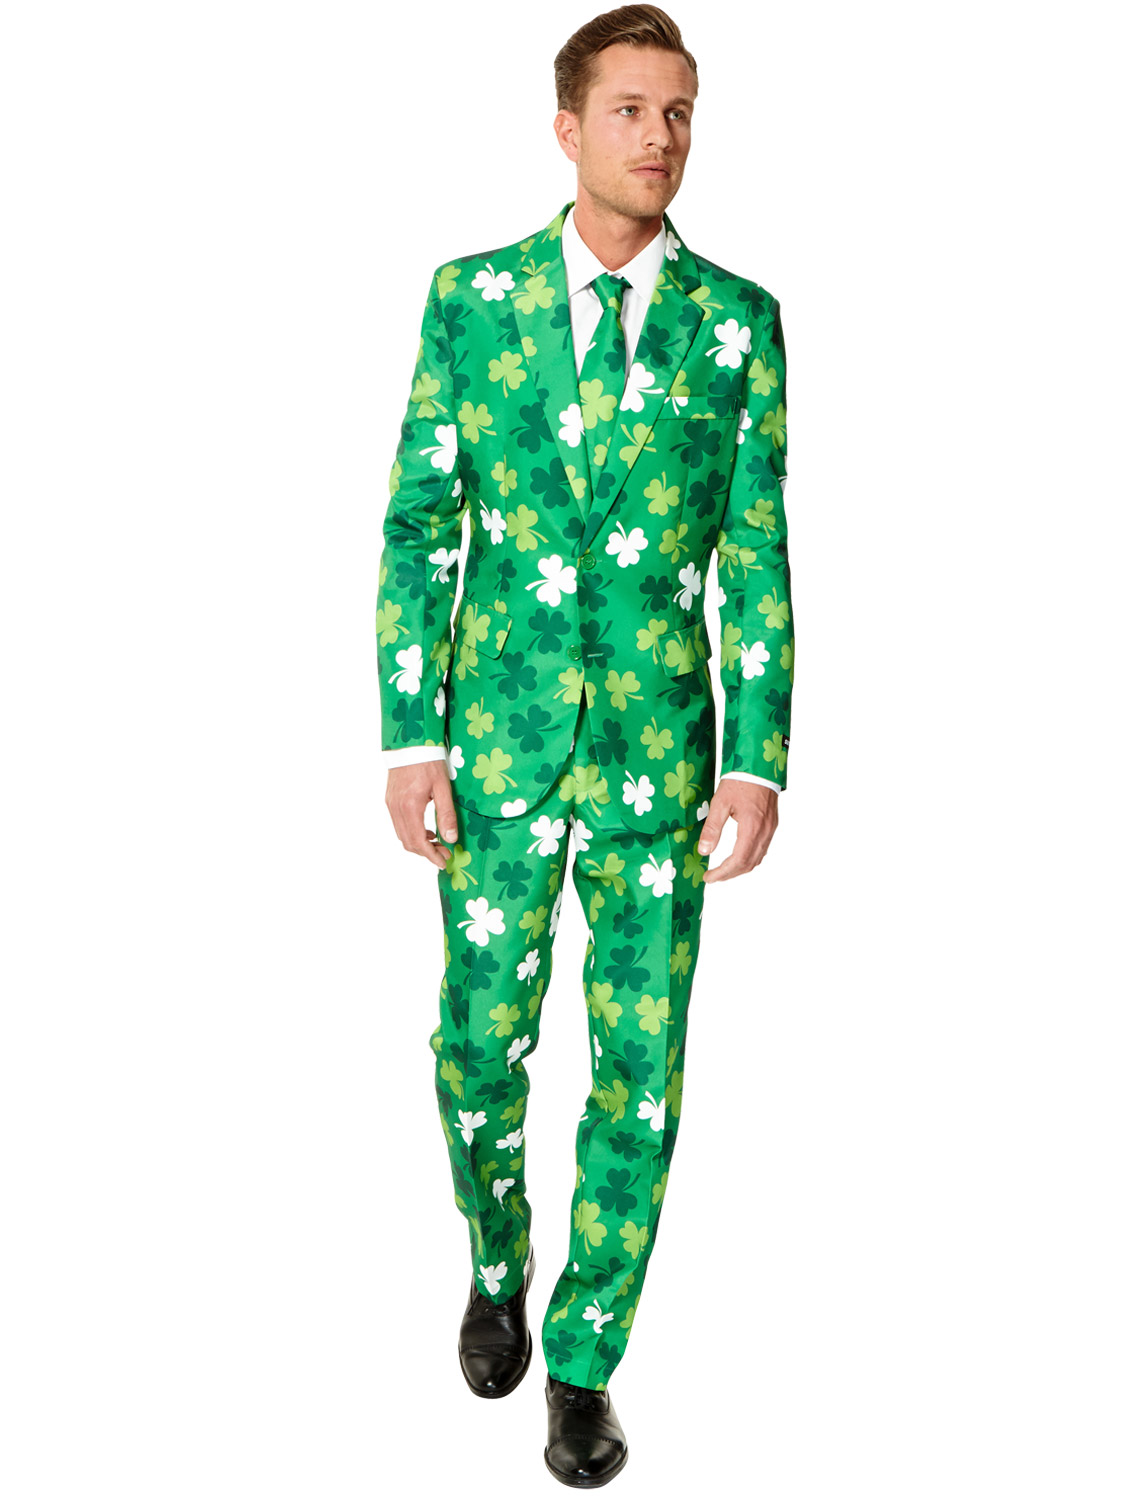 Browse our beautiful range of Irish clothing at The Irish Store. We have searched the island of Ireland to bring you the very best of Irish apparel. Whatever the occasion, we have the perfect gift for all the family in our extensive range of clothing from Ireland.